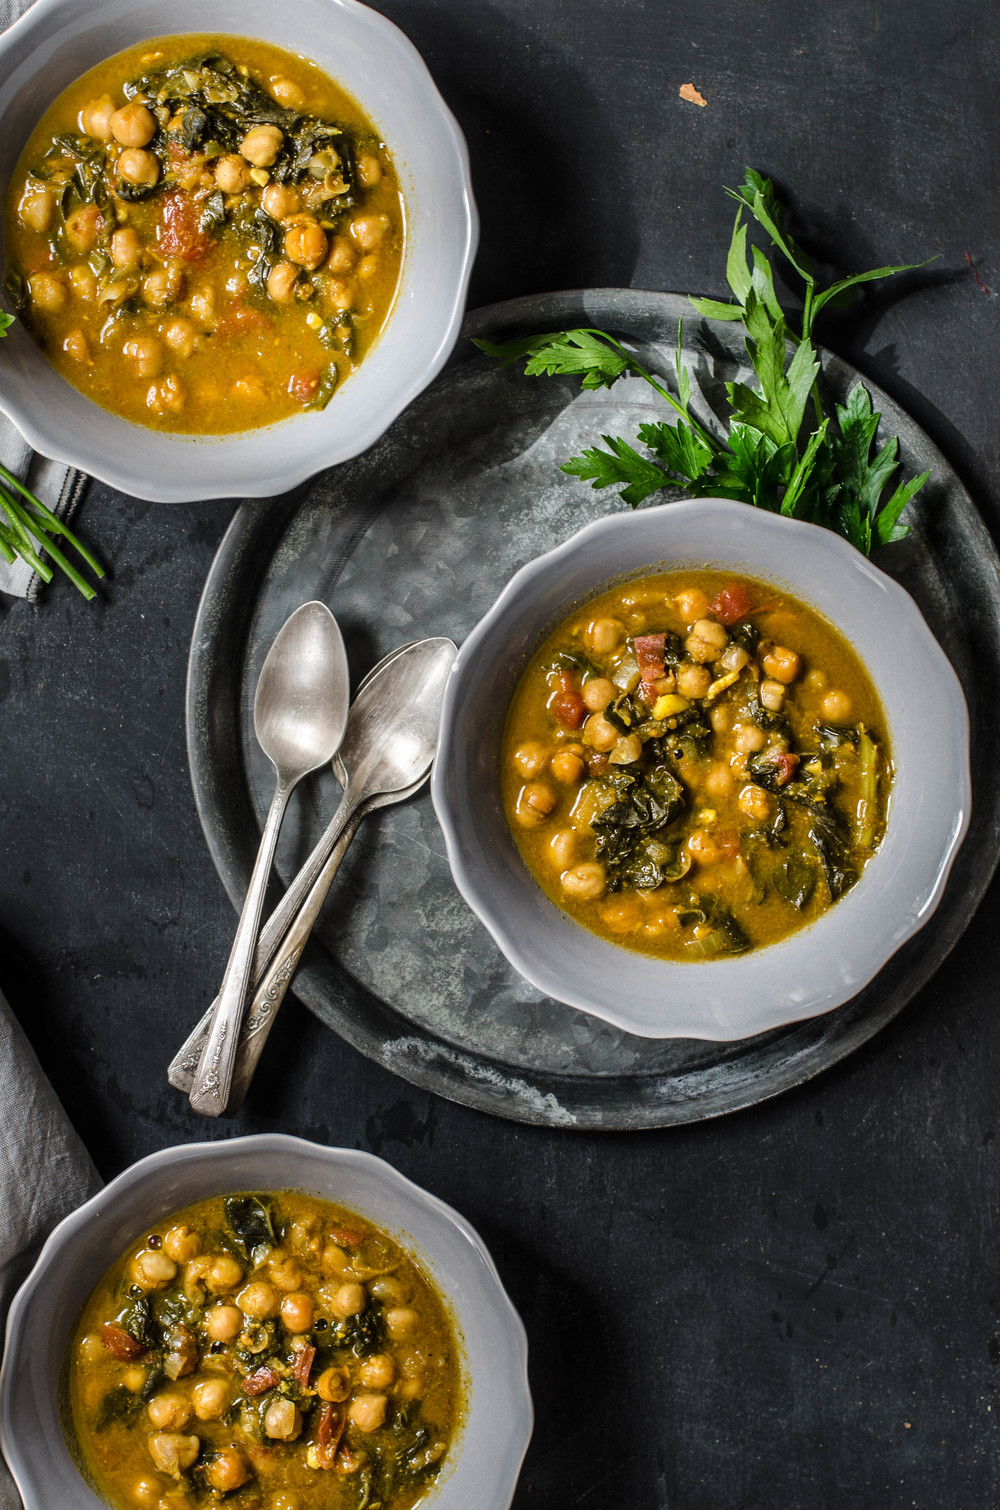 ROSE & IVY Journal Chickpea Stew with Swiss Char